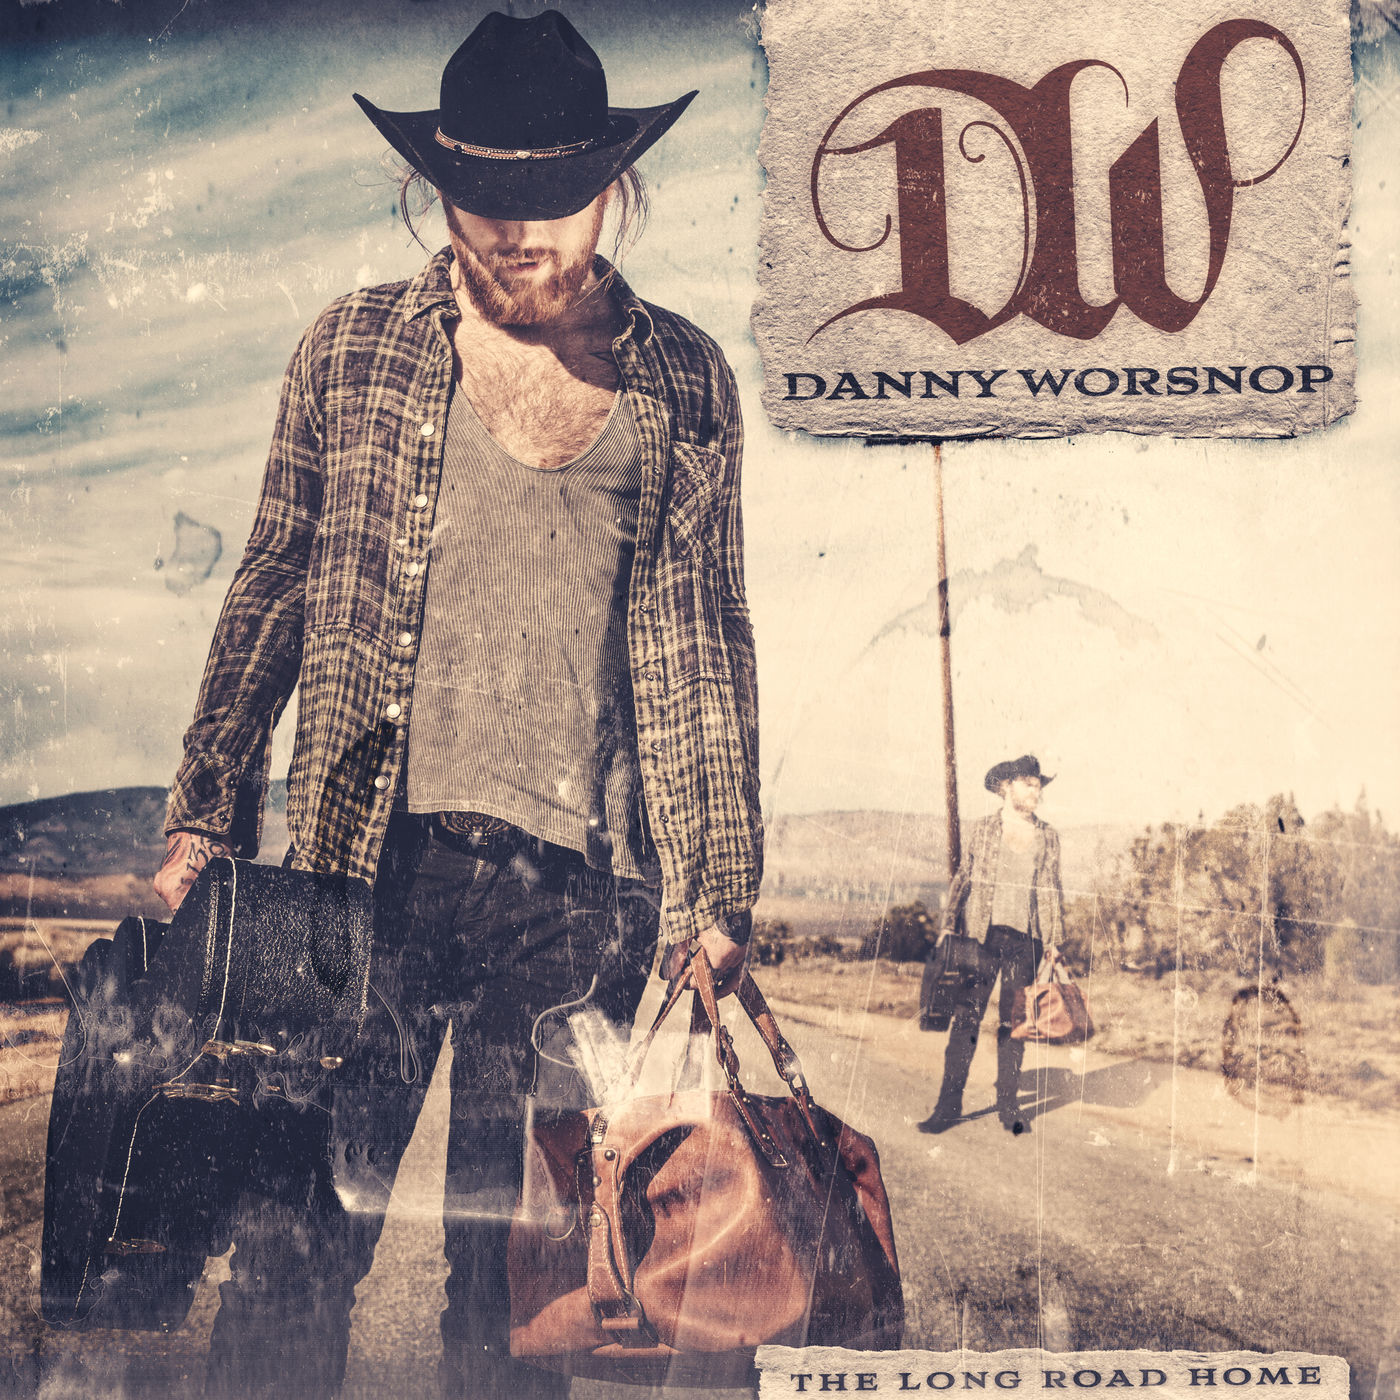 Danny Worsnop - I Got Bones [single] (2016)